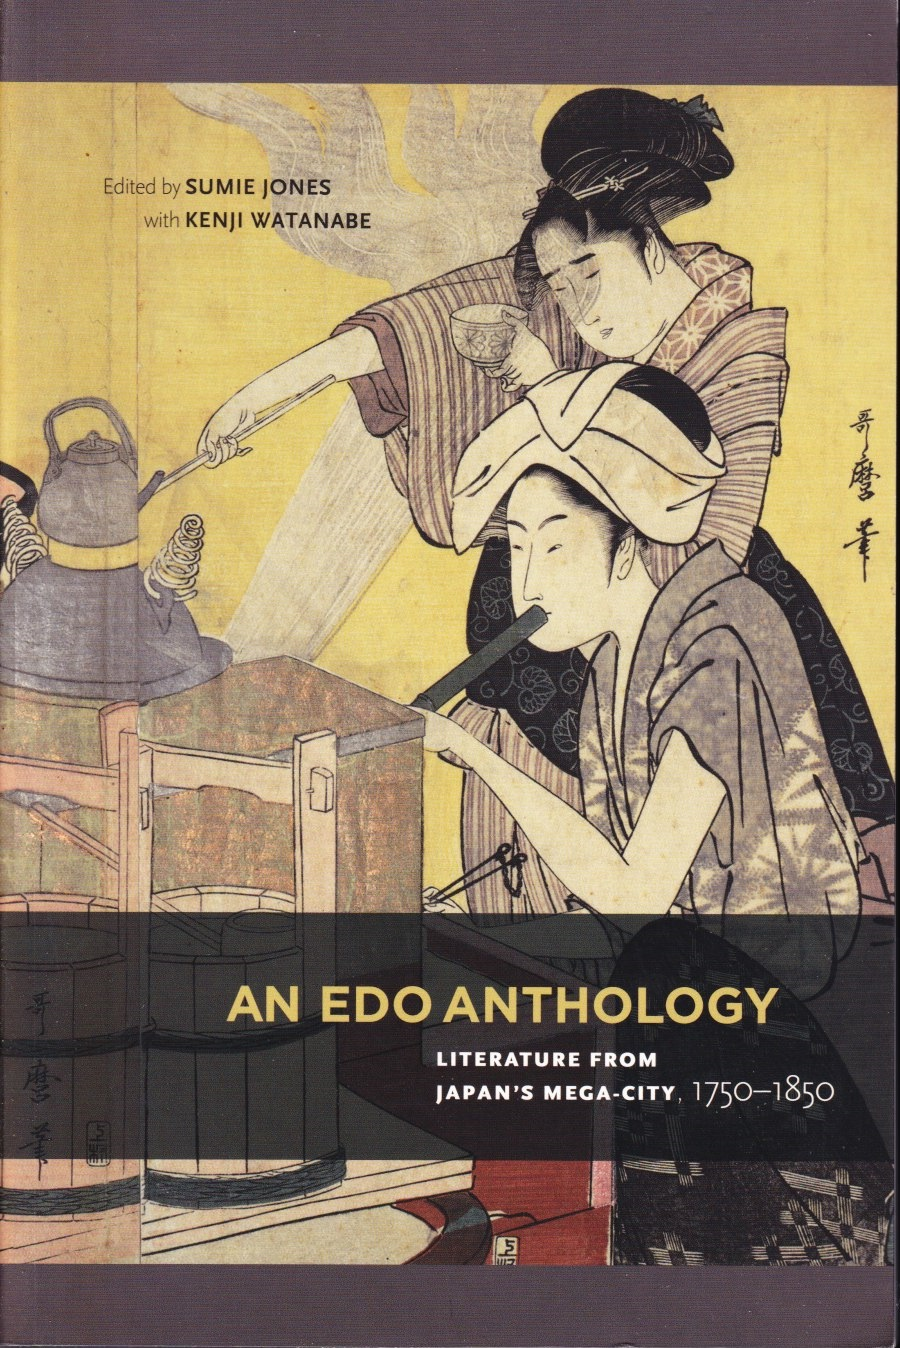 Image for An Edo Anthology  Literature from Japan's Mega-City, 1750-1850